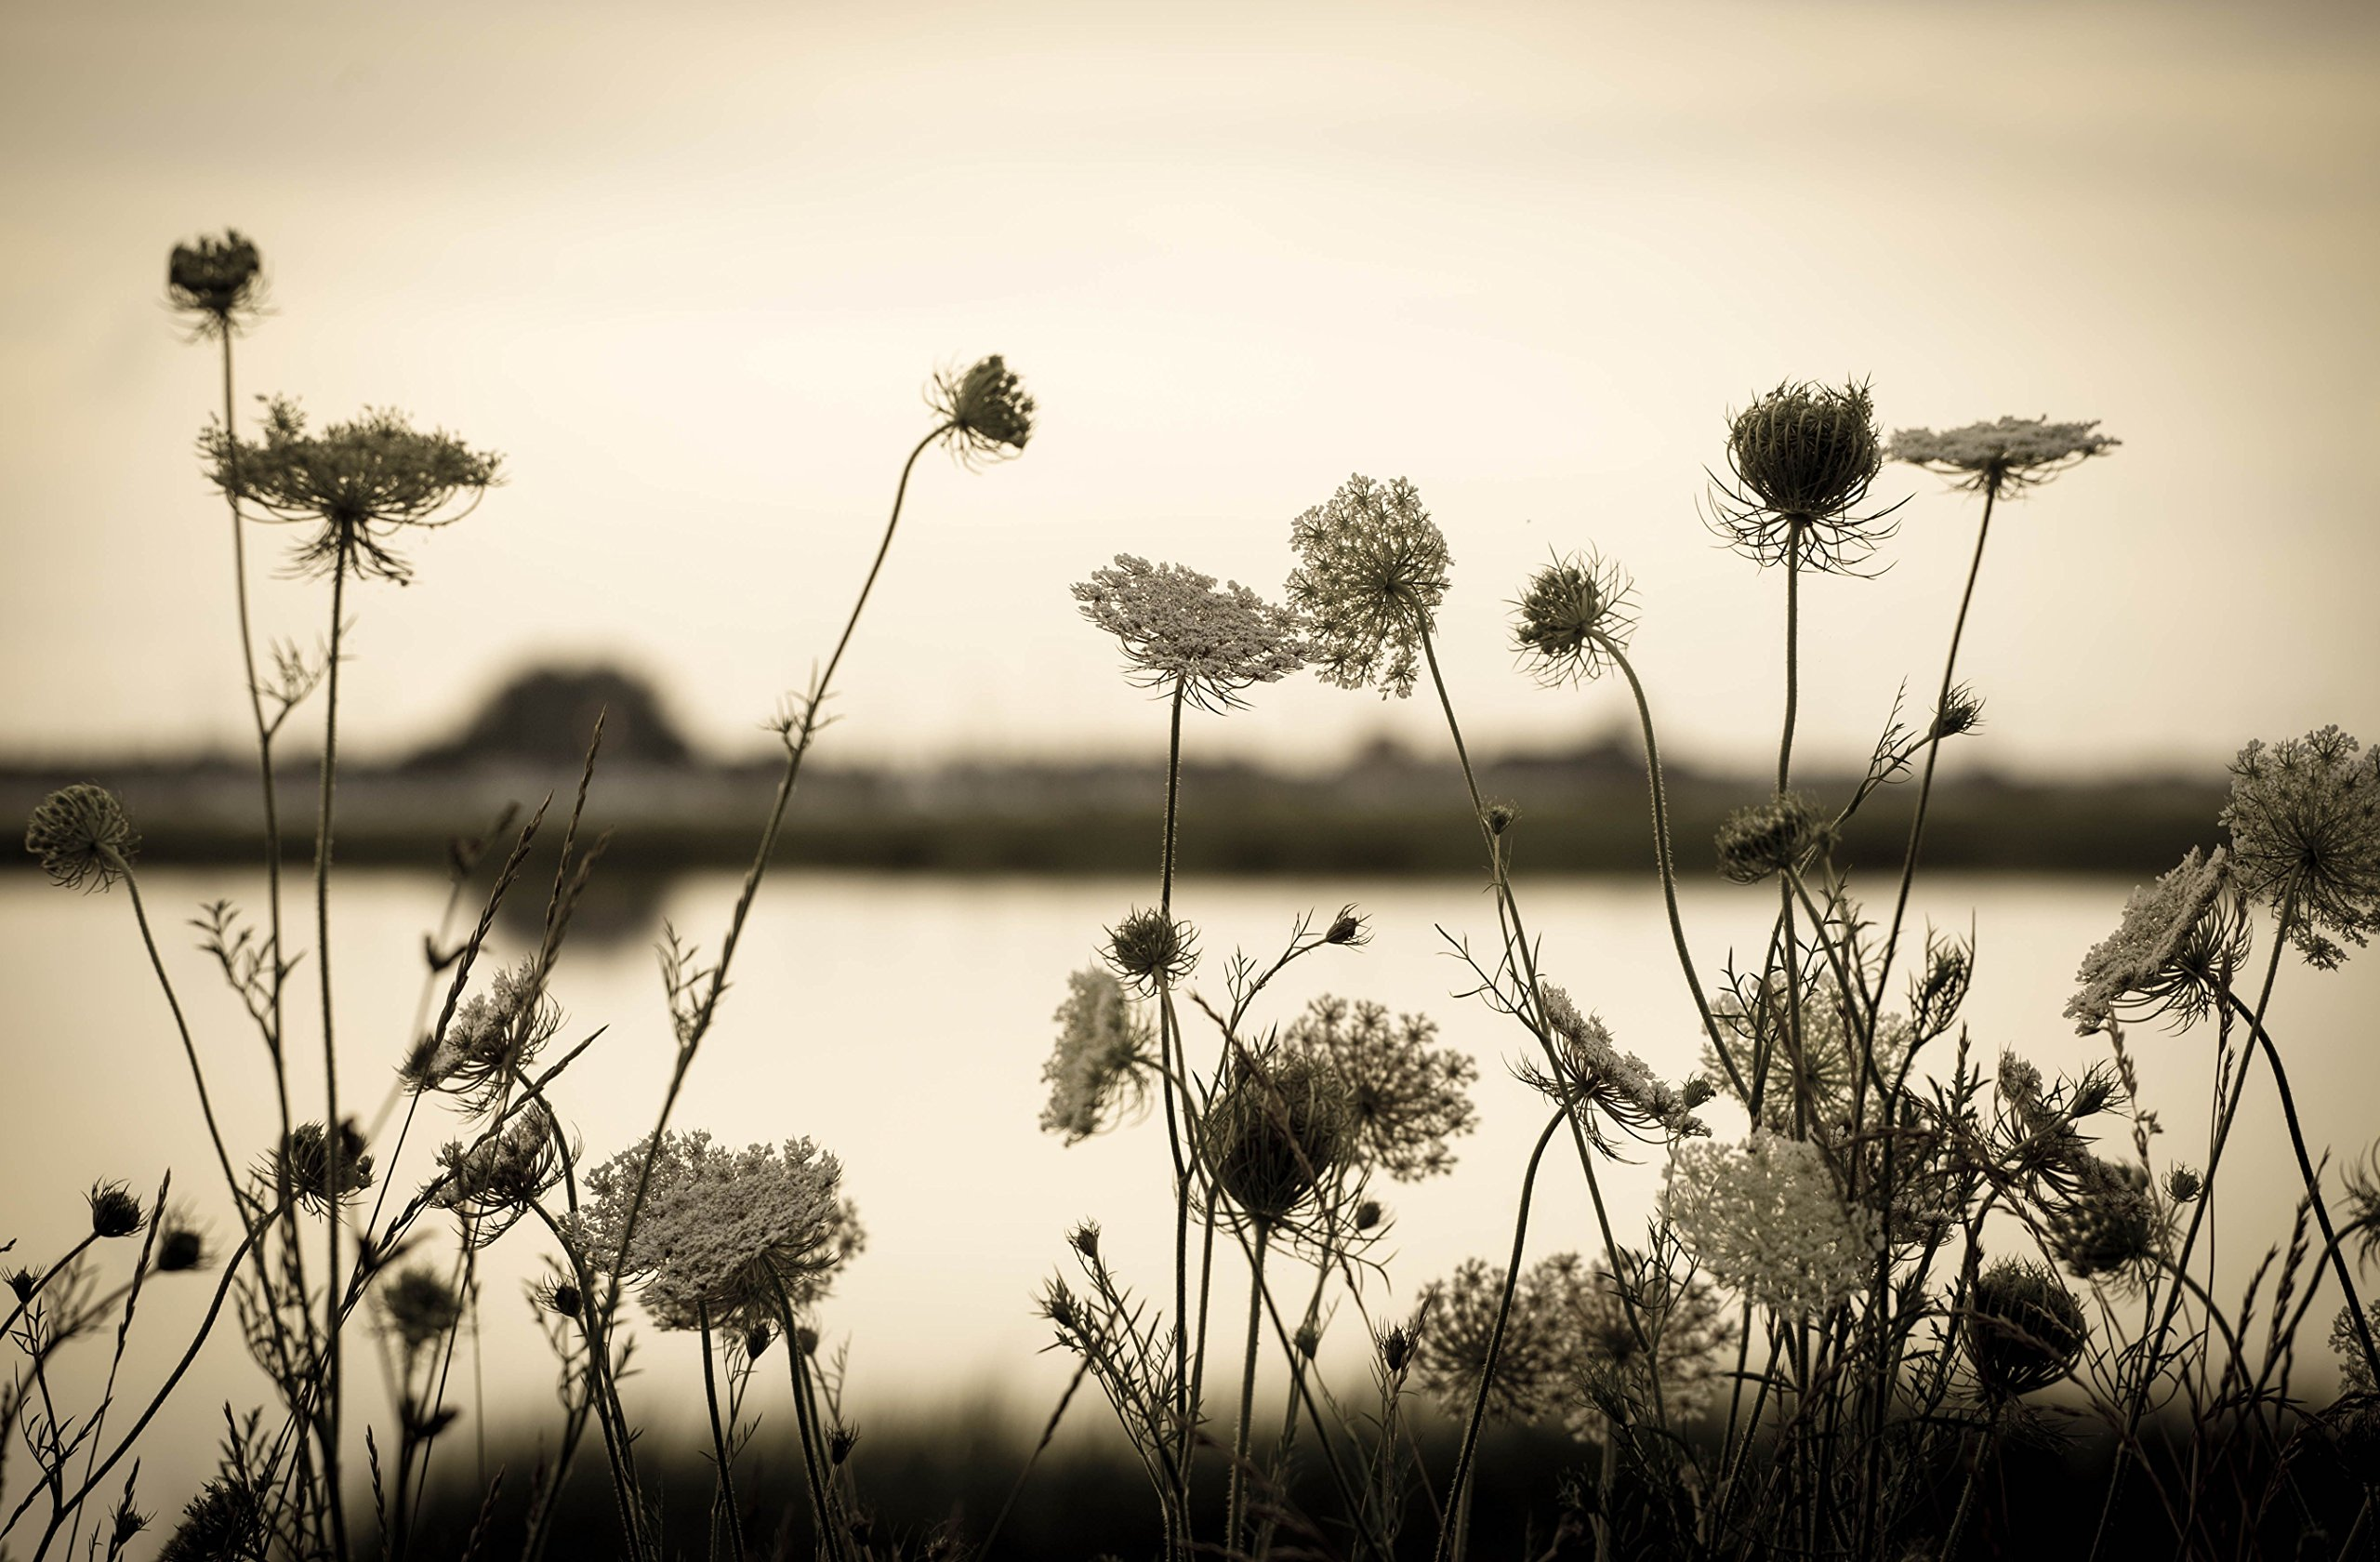 Queen Anne's Lace near the Shore by